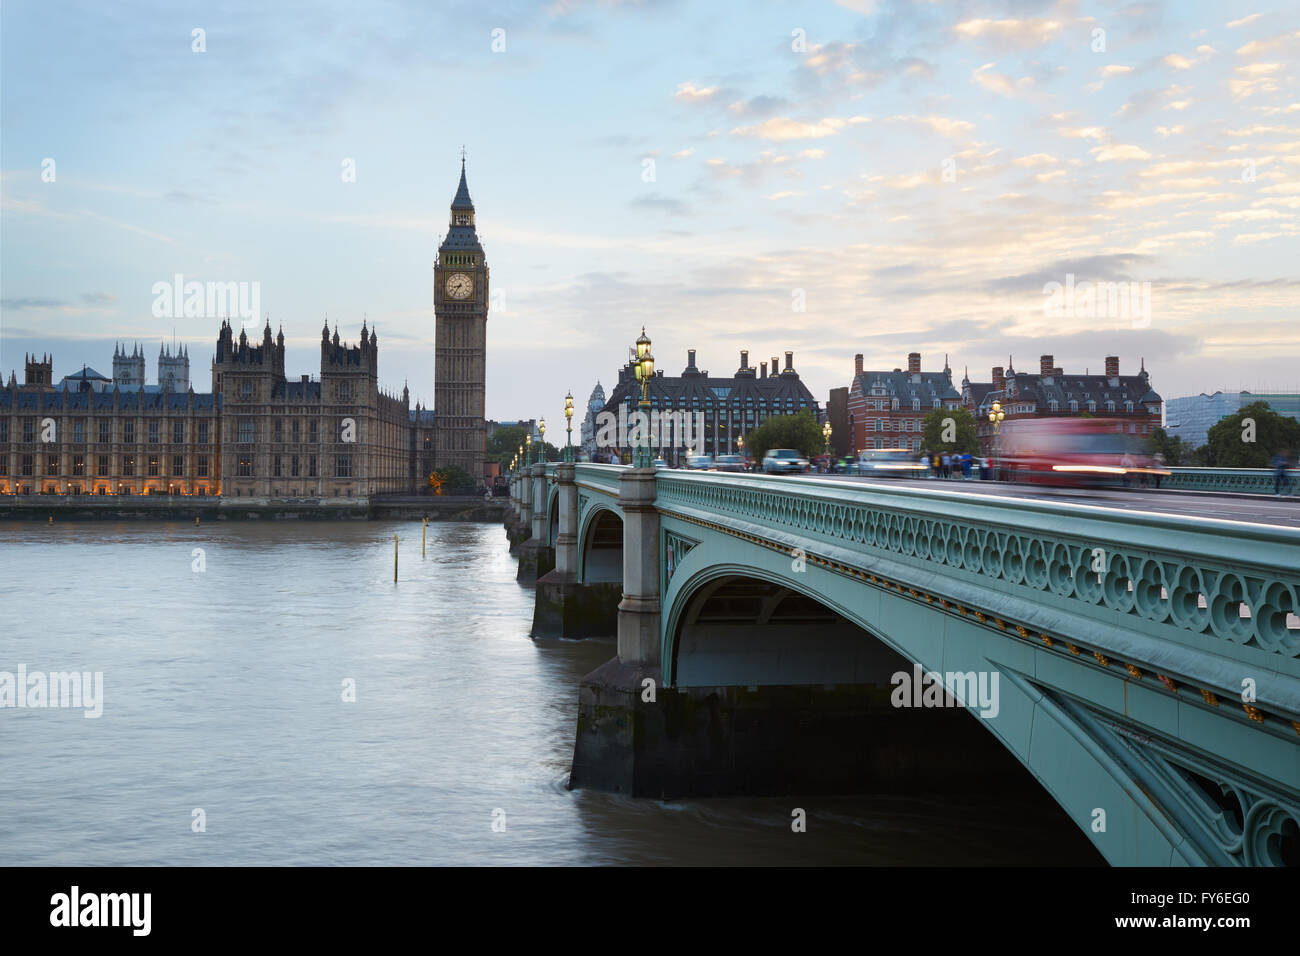 Big Ben and Palace of Westminster, traffic on bridge at dusk in London, natural light and colors - Stock Image